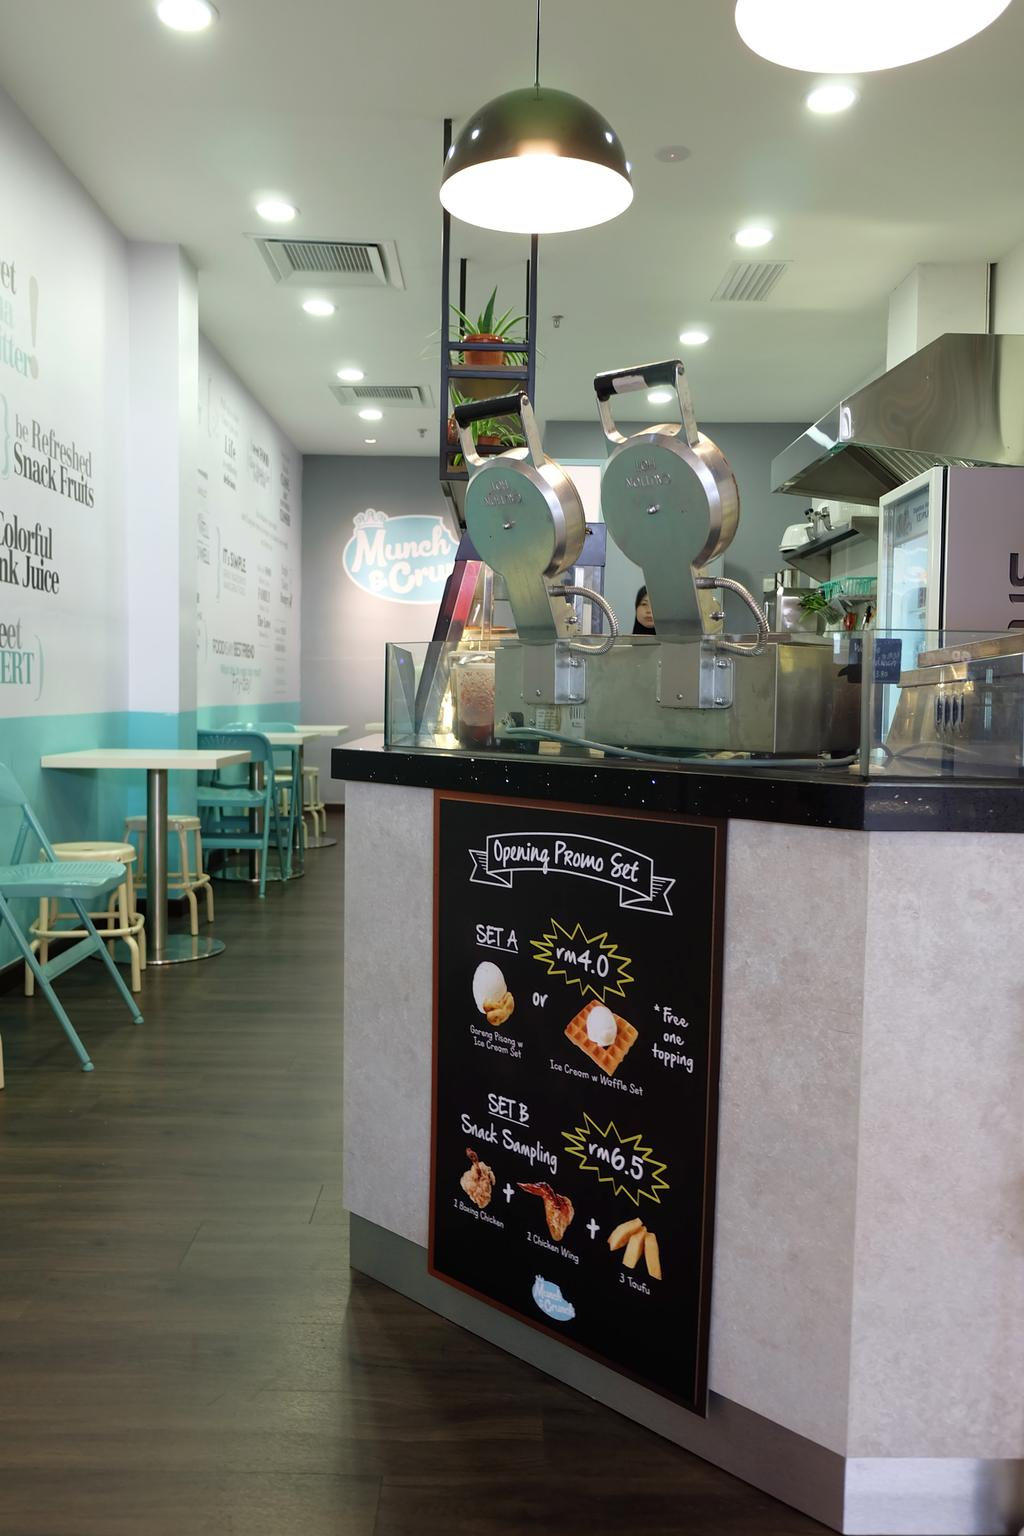 Munch & Crunch, IOI Mall, Commercial, Interior Designer, Spazio Design Sdn Bhd, Transitional, Flora, Jar, Plant, Potted Plant, Pottery, Vase, Chair, Furniture, Cafe, Restaurant